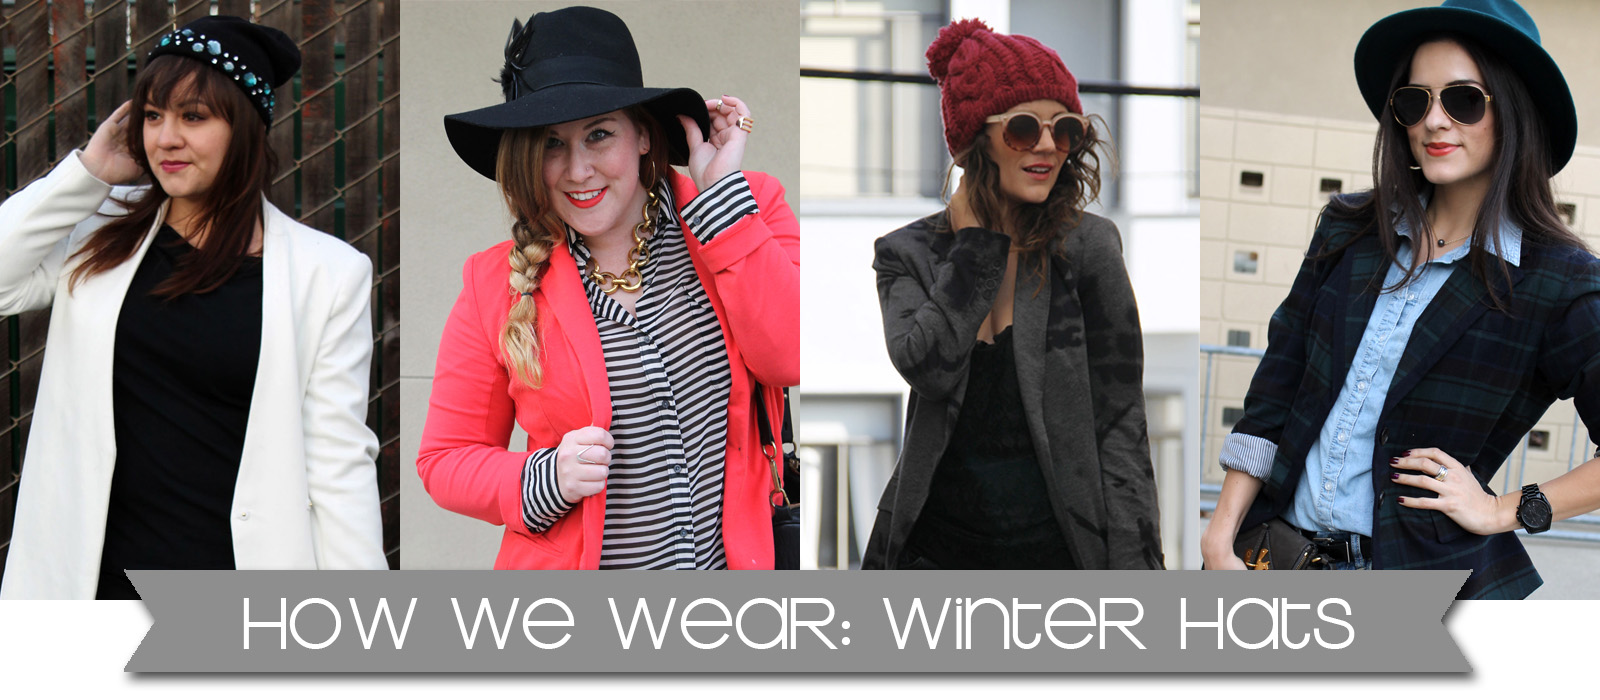 bd4dea10ea2 How We Wear  Winter Hats - undeniable style — undeniable style